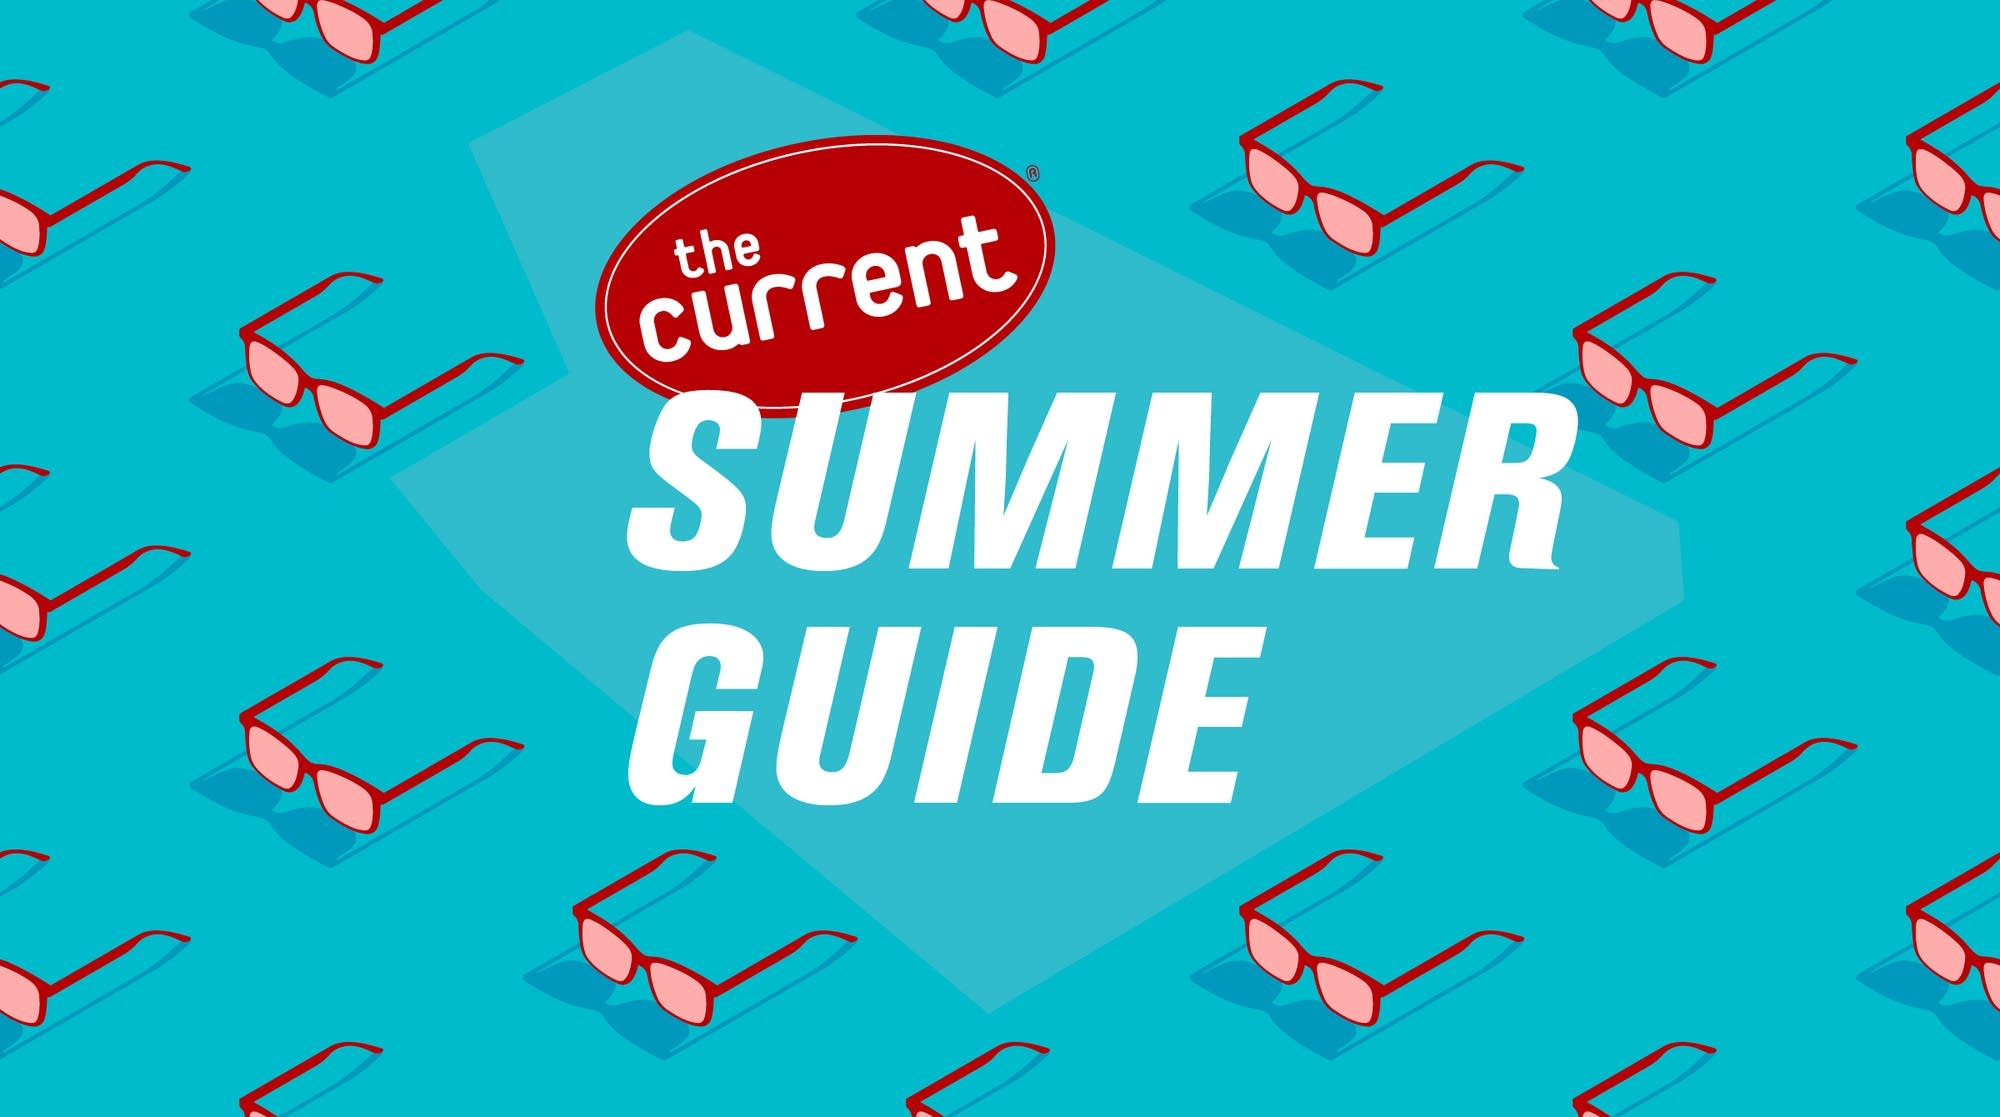 The Current Summer Guide graphic.